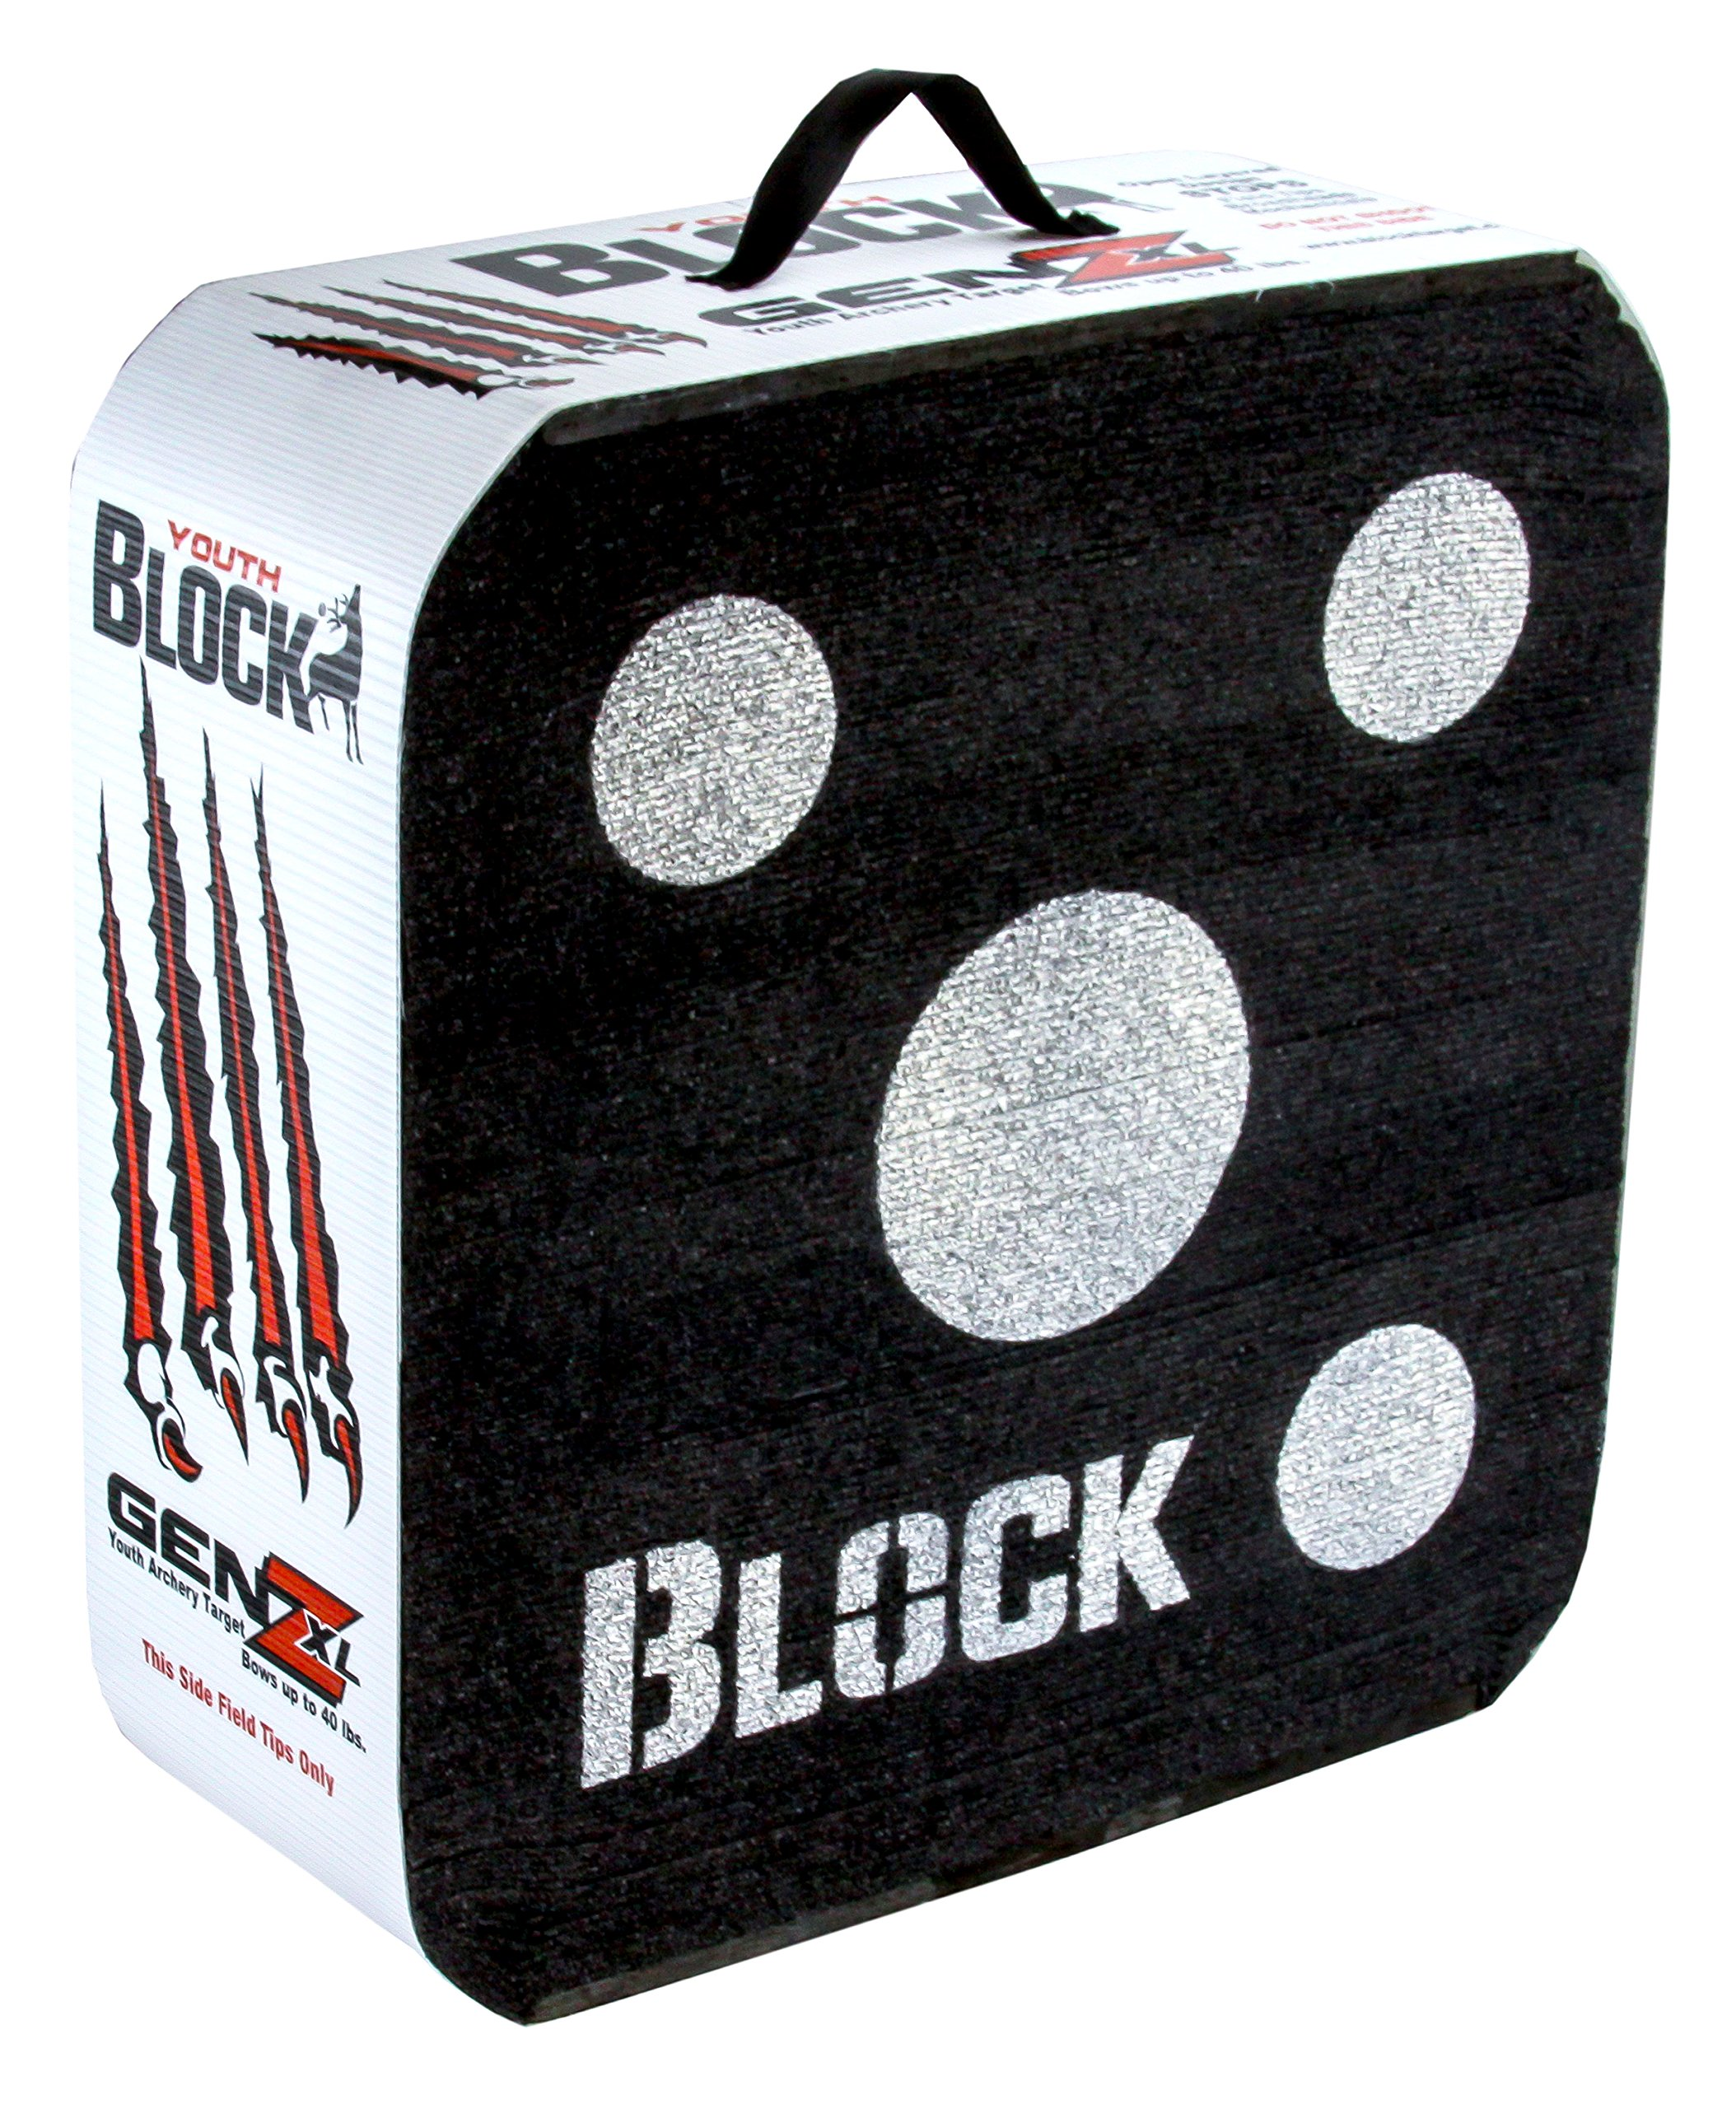 Block GenZ XL Youth Archery Arrow Target by Field Logic